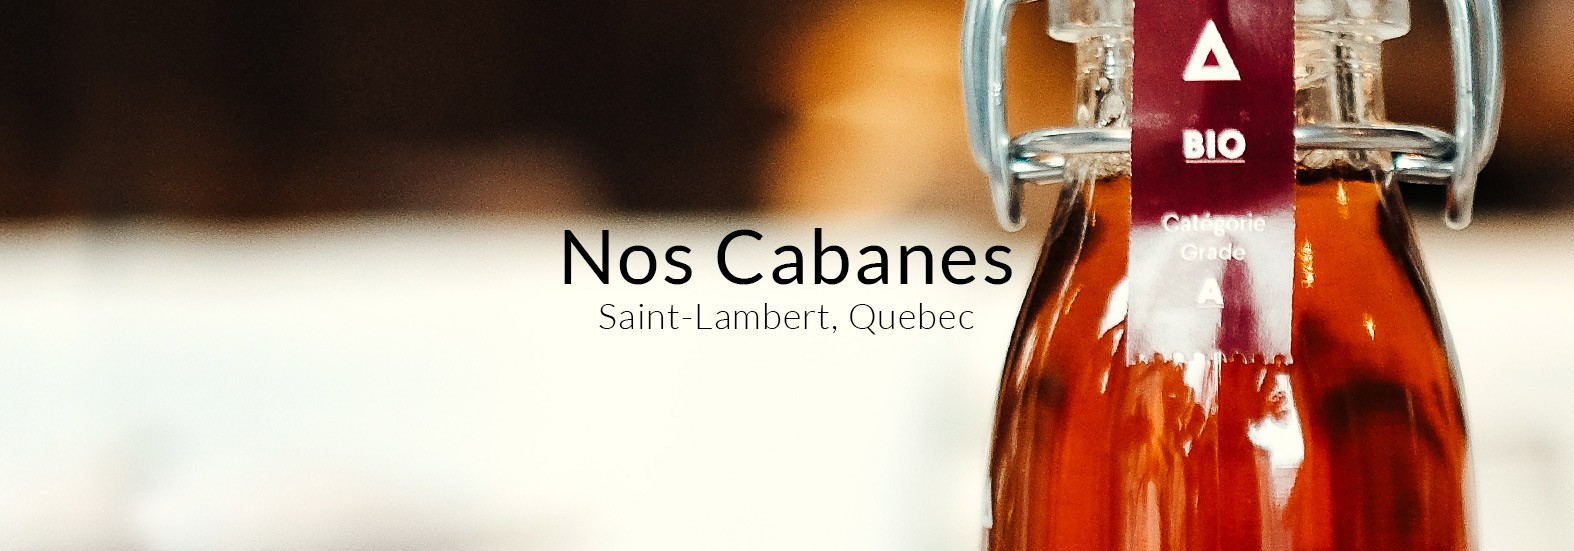 Nos Cabanes - maple syrup from Quebec